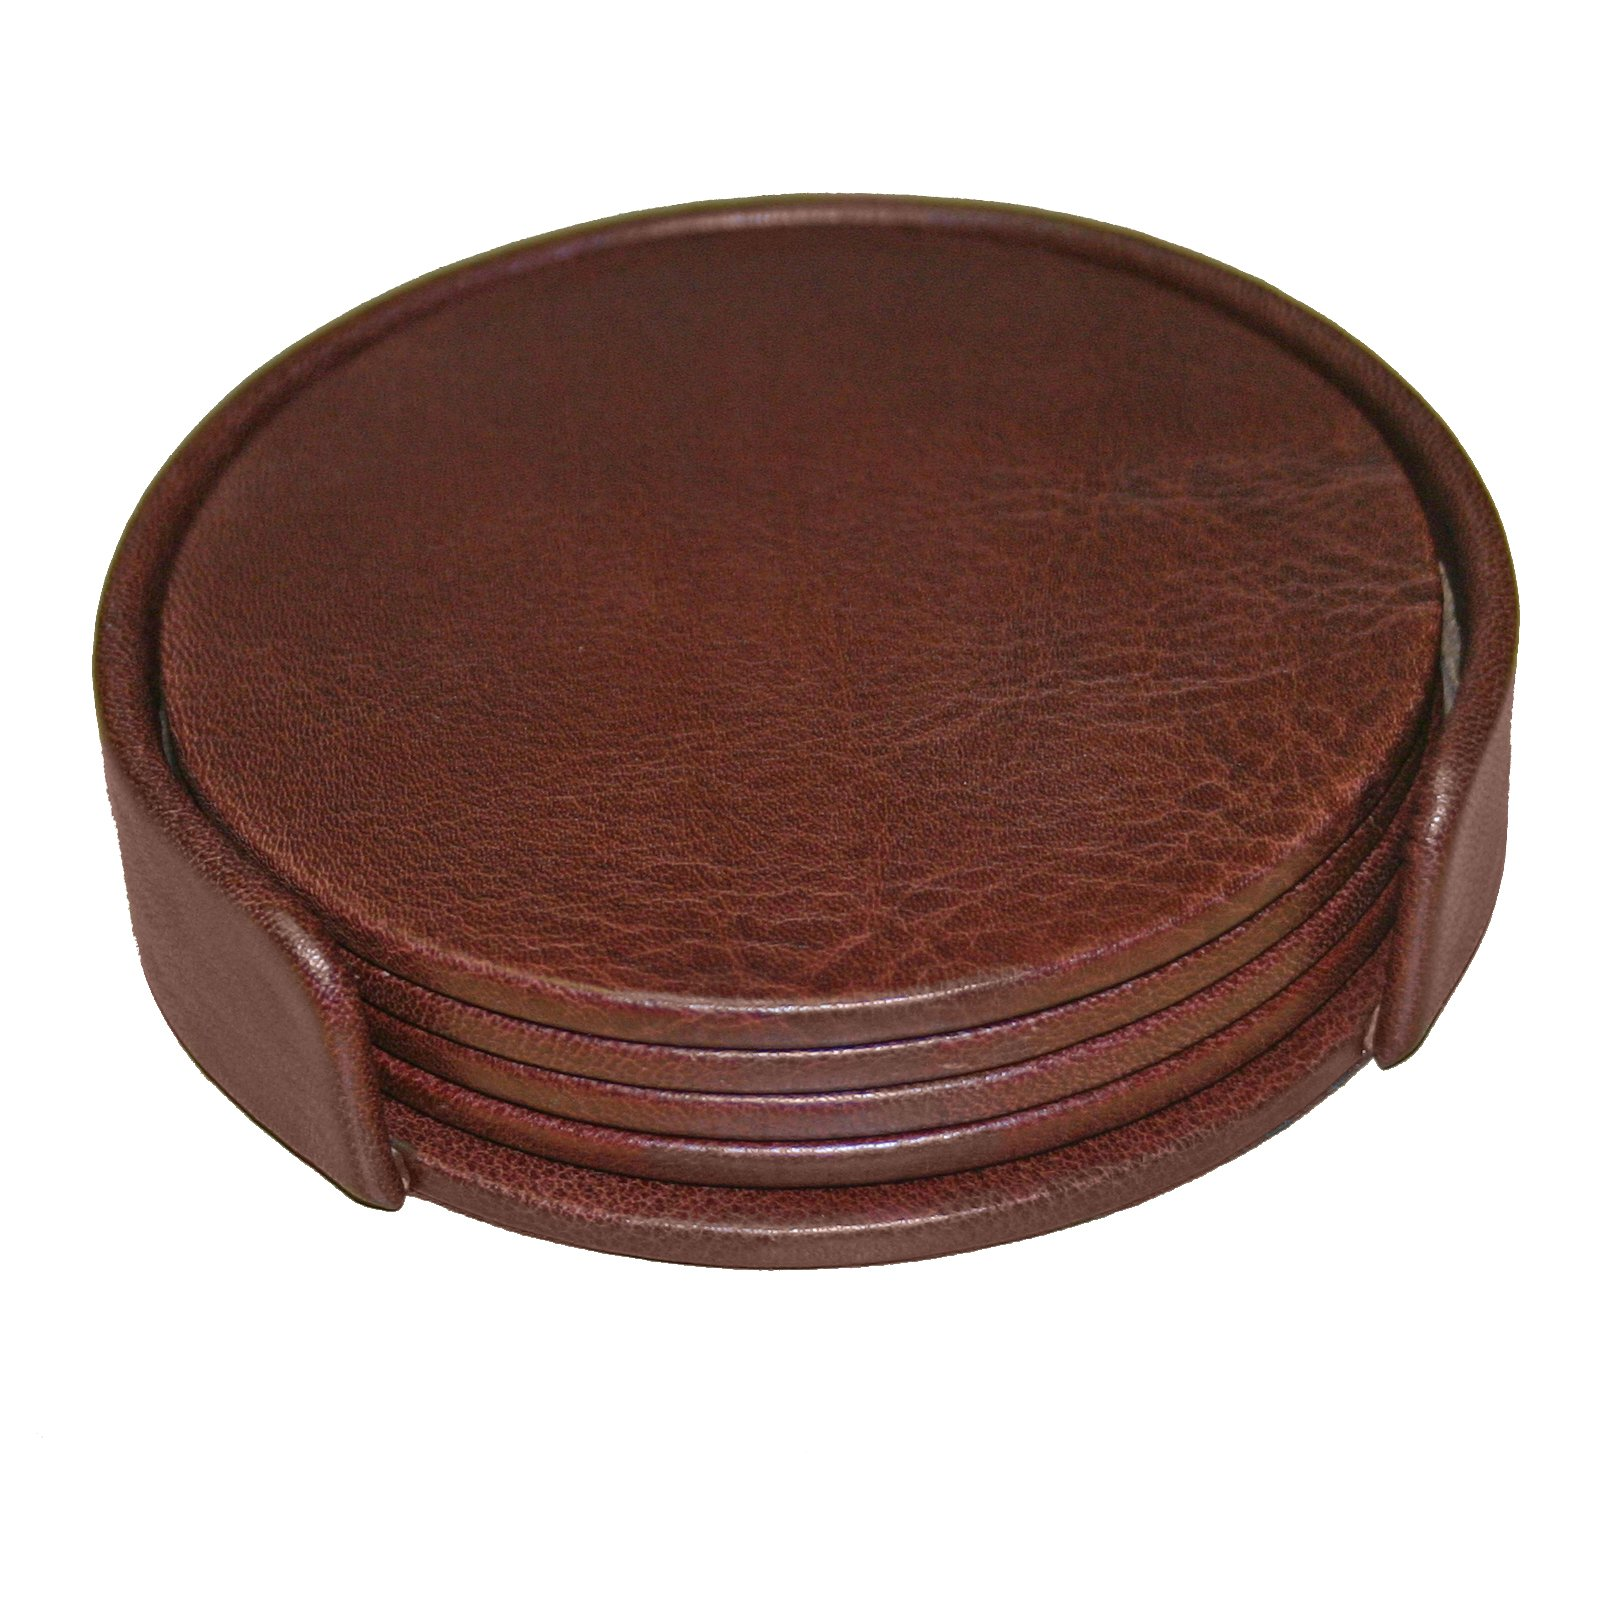 Dacasso Mocha Leather 4-Round Coaster Set by Dacasso